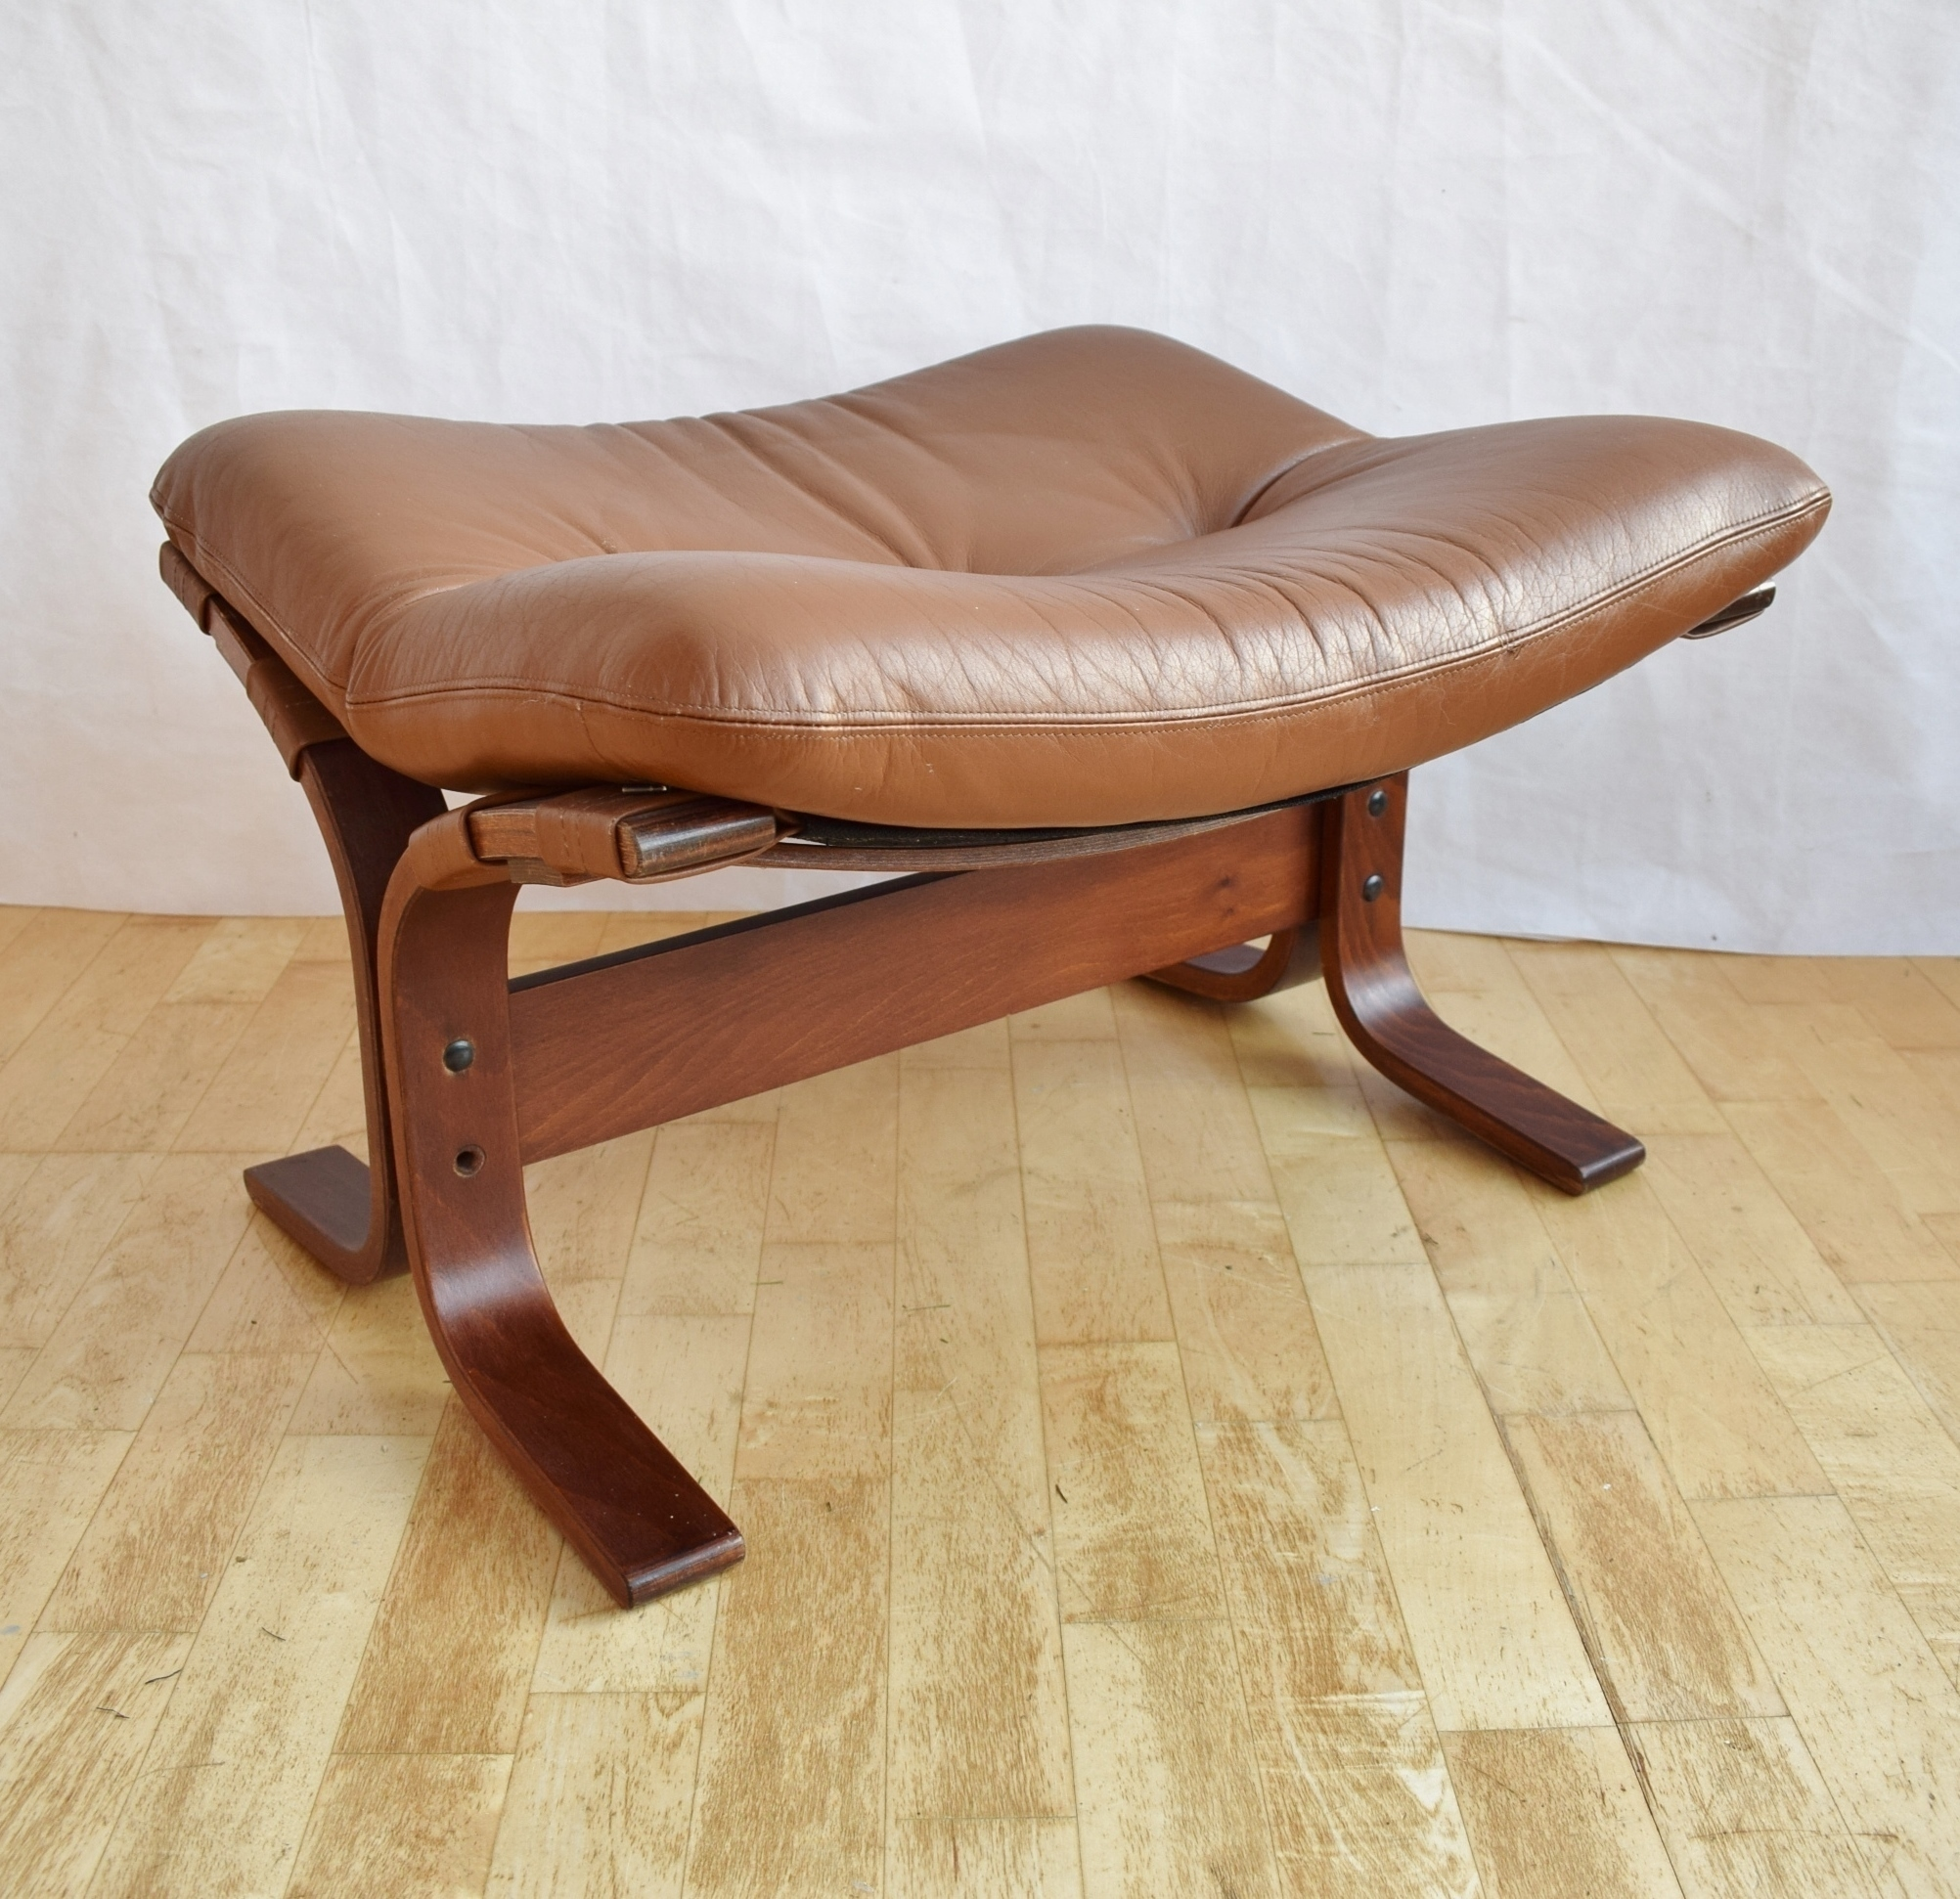 Cool Mid Century Retro Norwegian Westnofa Tan Leather Beech Foot Stool Ottoman 70S Gmtry Best Dining Table And Chair Ideas Images Gmtryco